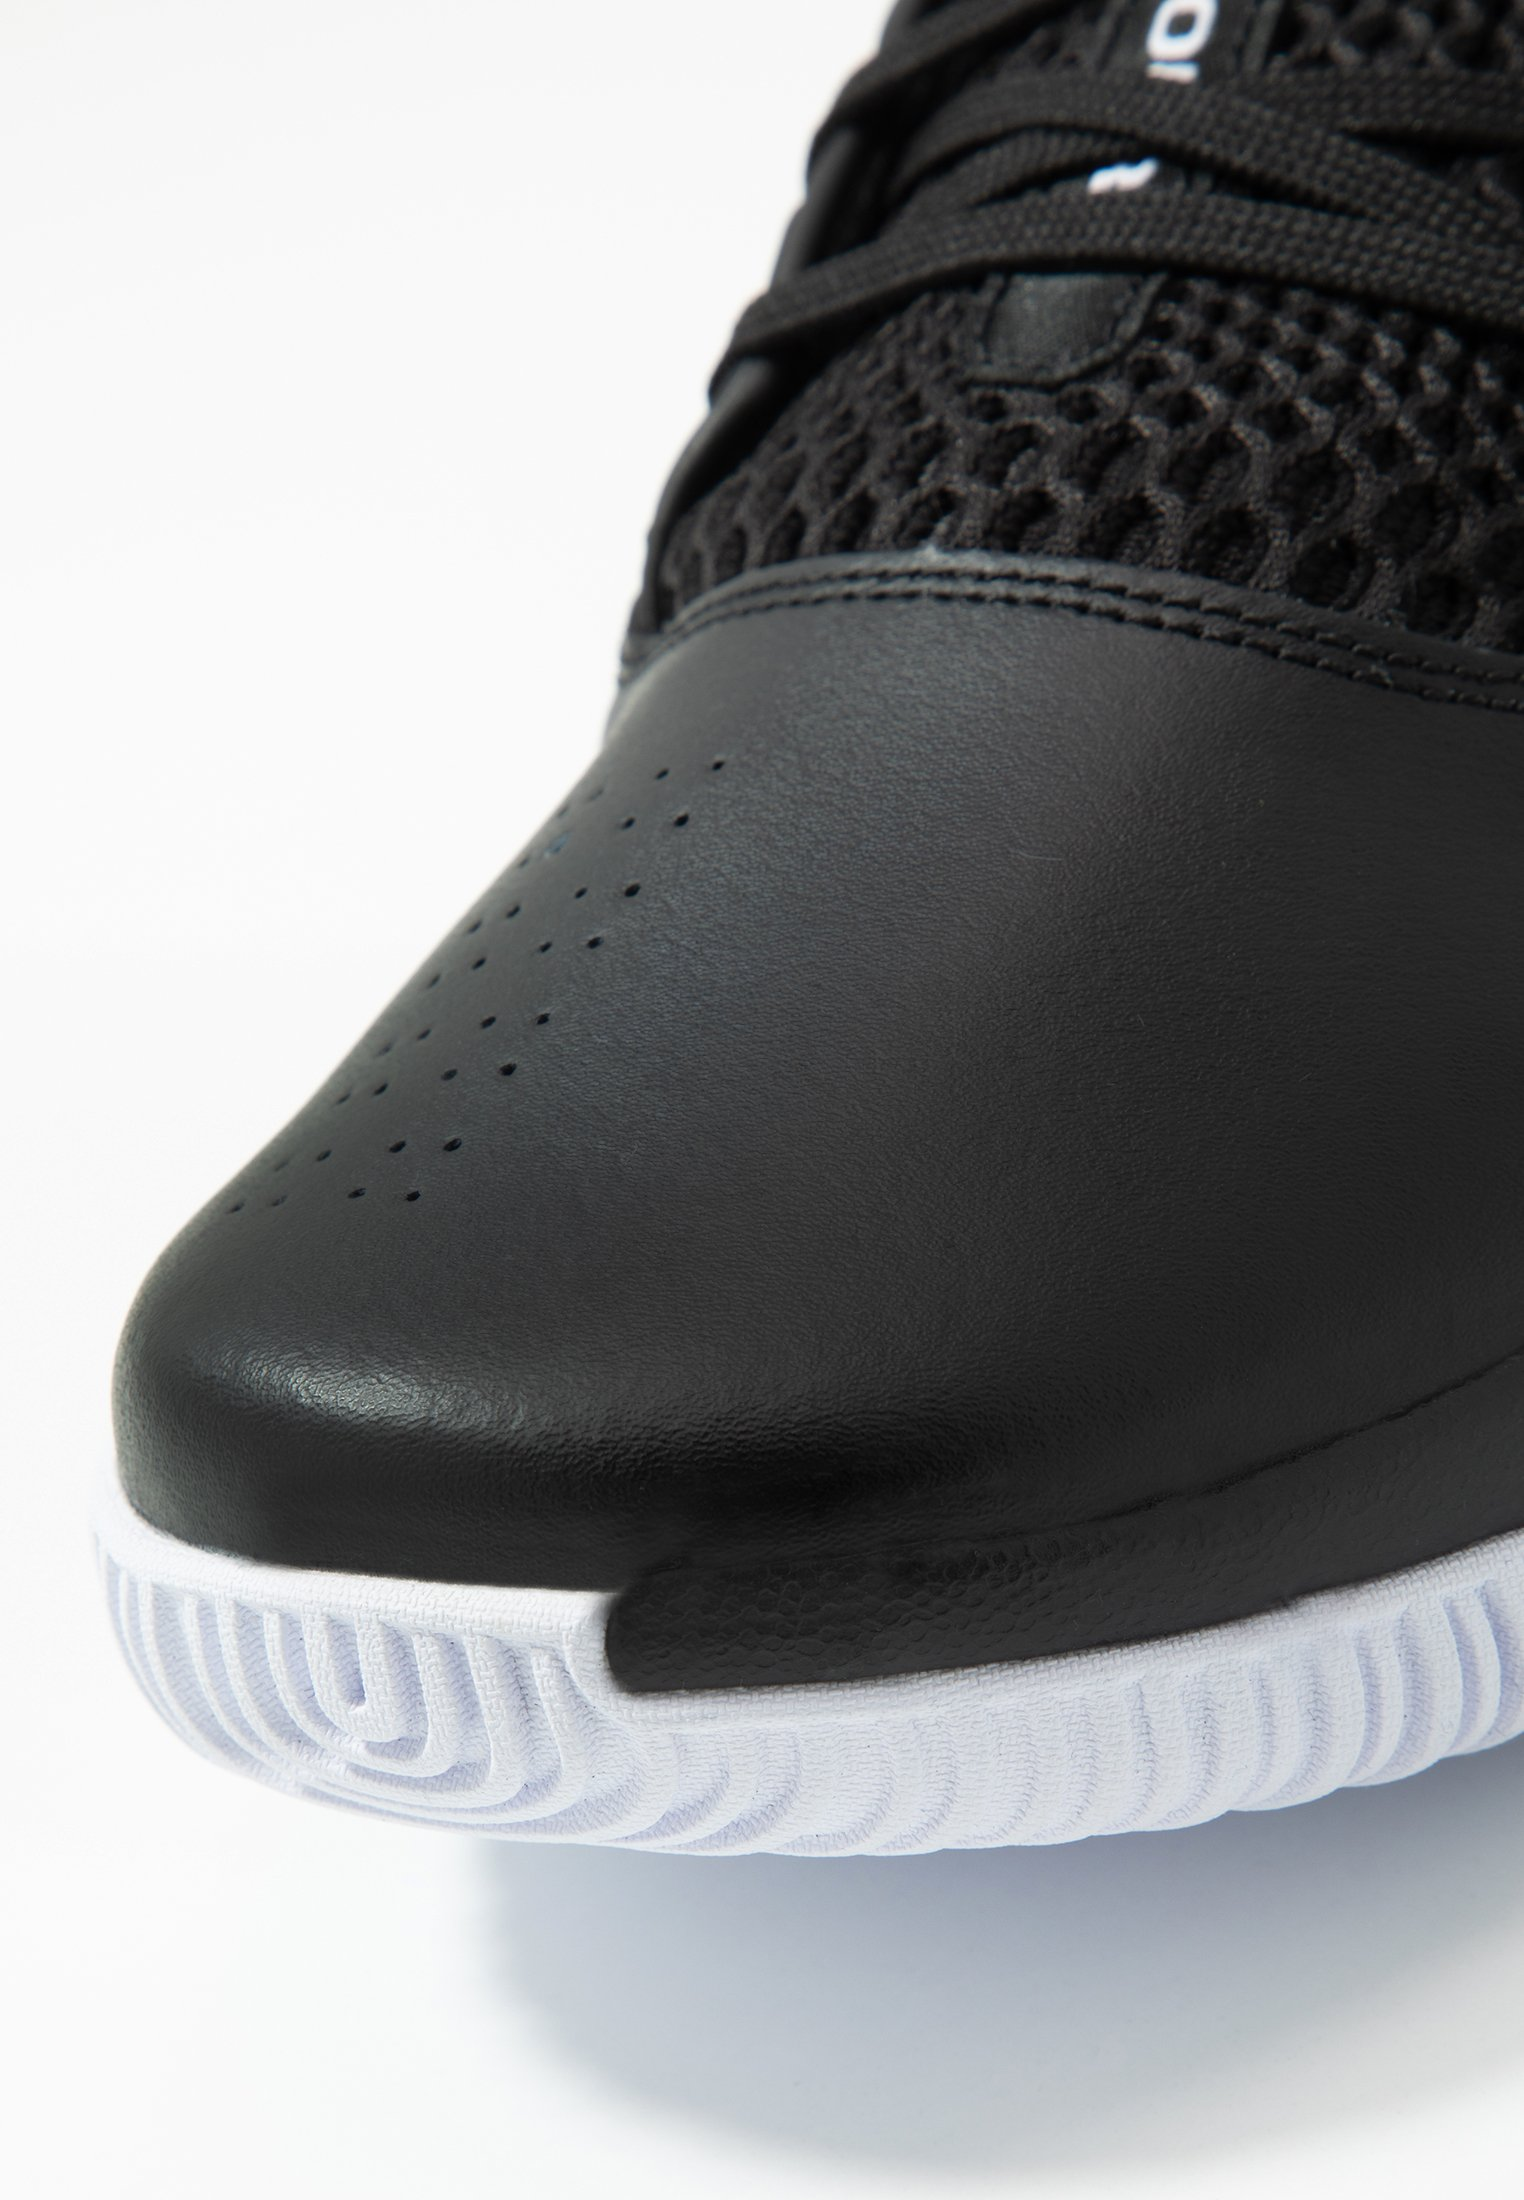 Under Armour Lockdown 4 - Basketball Shoes Black/white